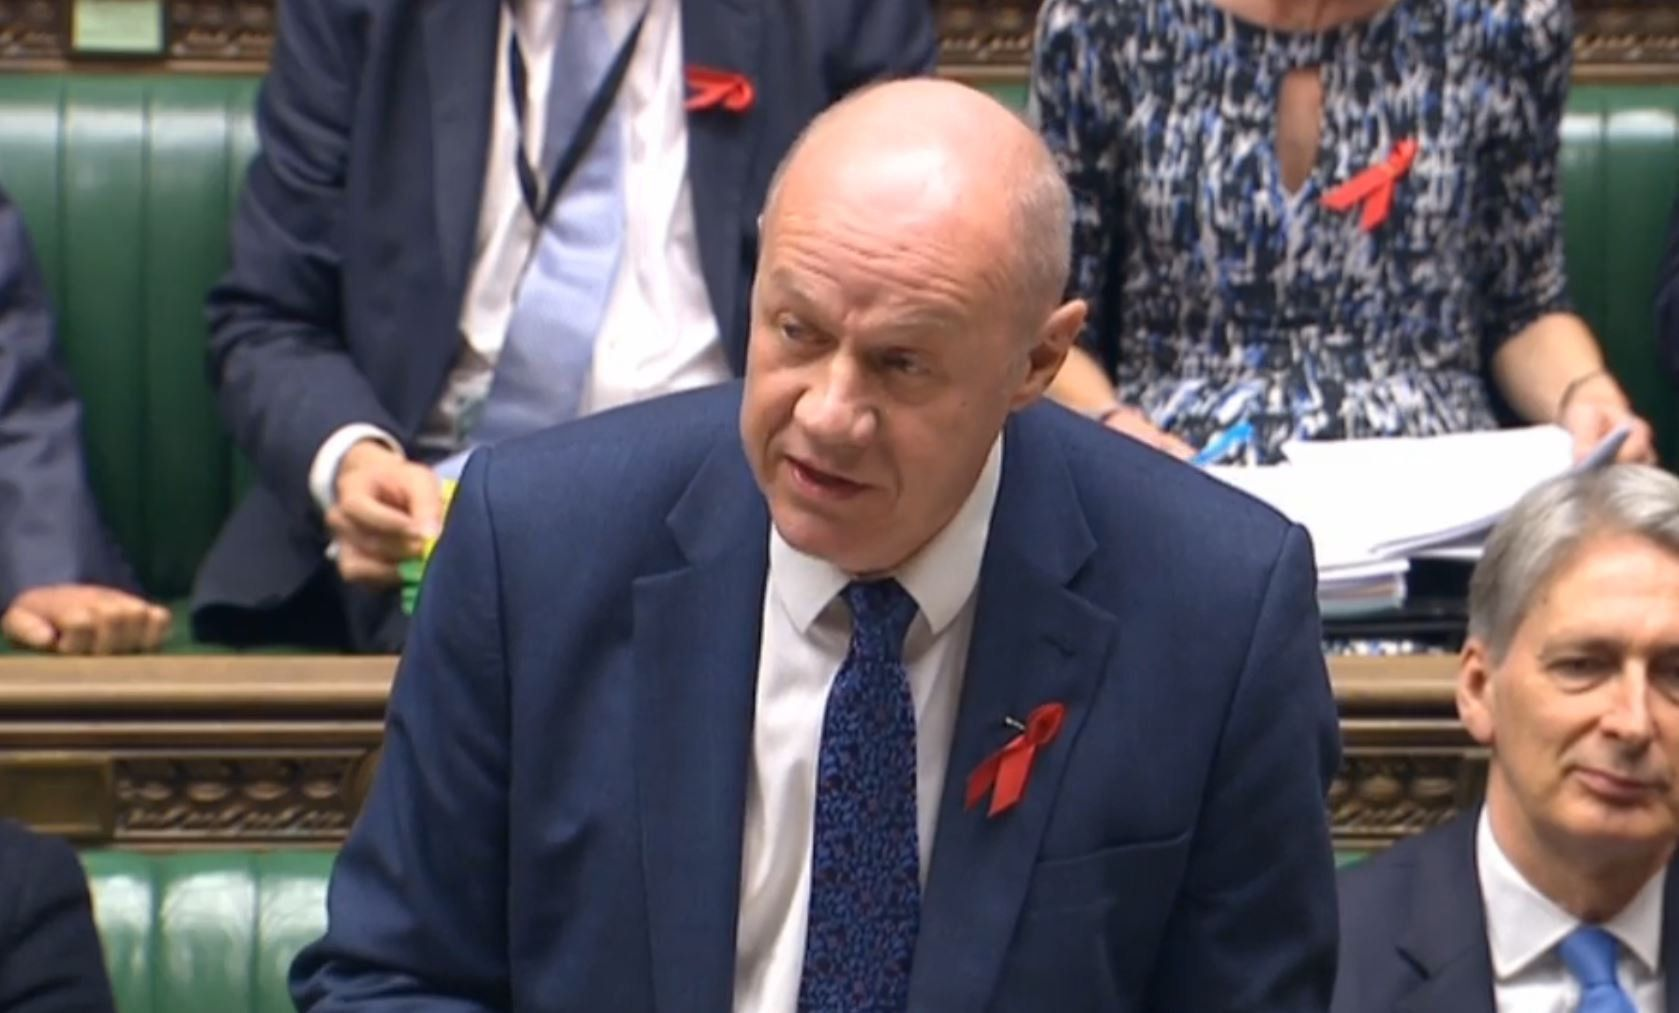 Damian Green Quits Over Porn Lies And Sex Harassment